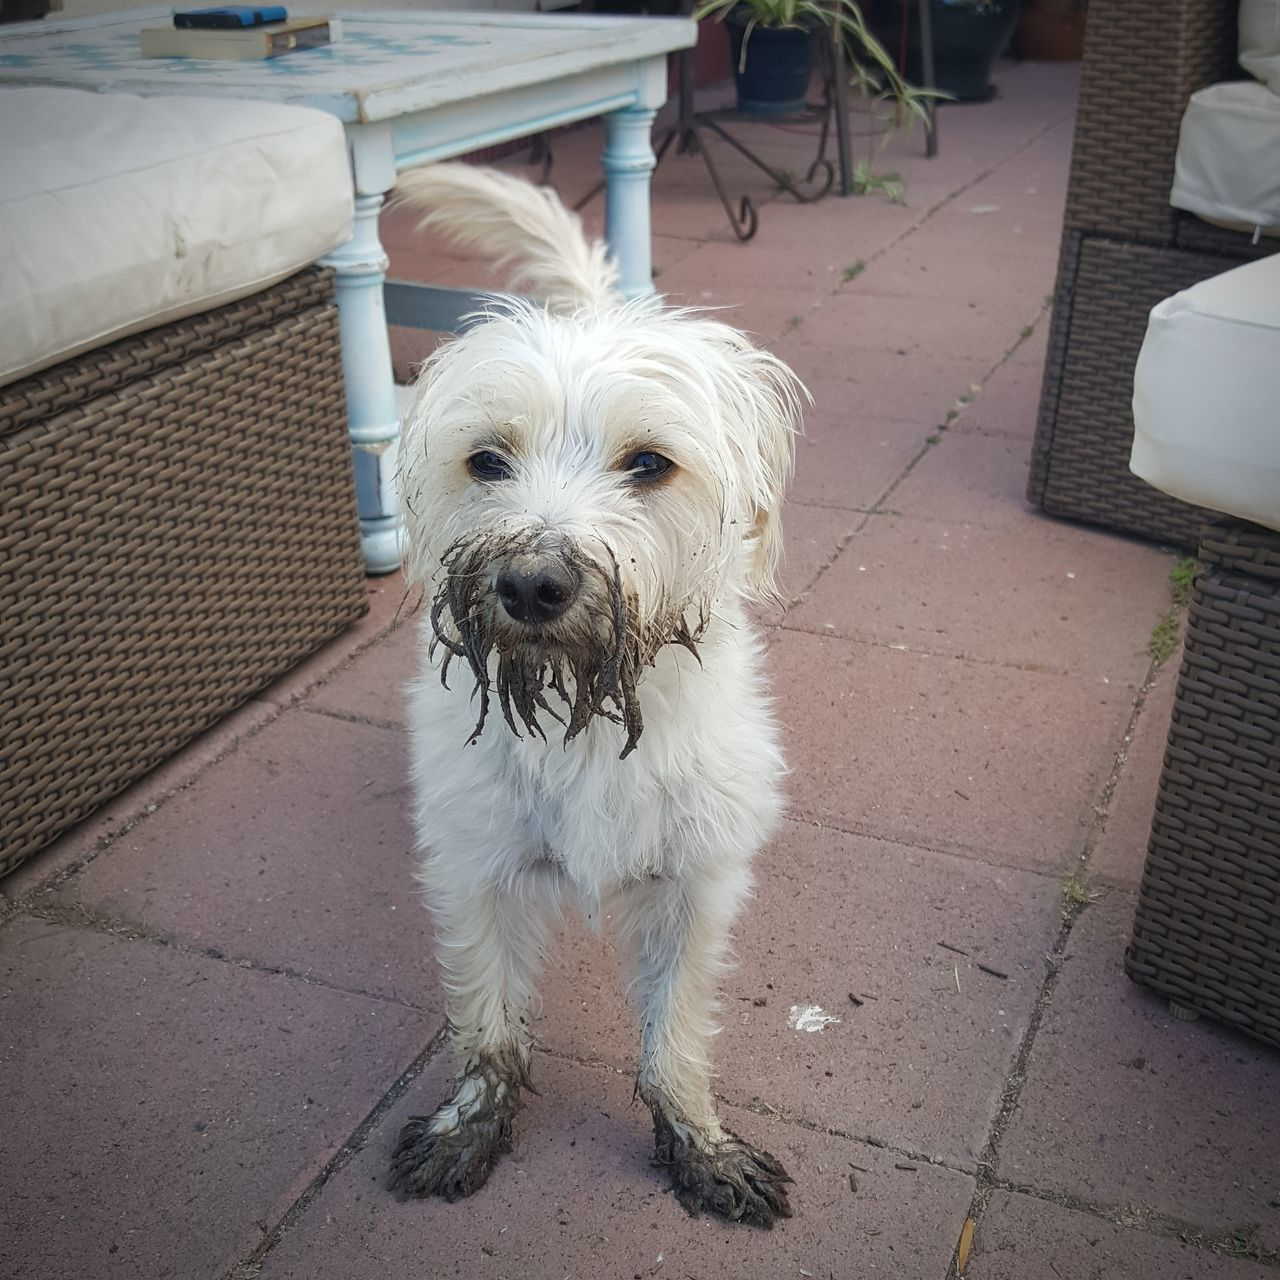 dog, pets, mammal, animal themes, one animal, domestic animals, full length, looking at camera, portrait, outdoors, day, no people, west highland white terrier